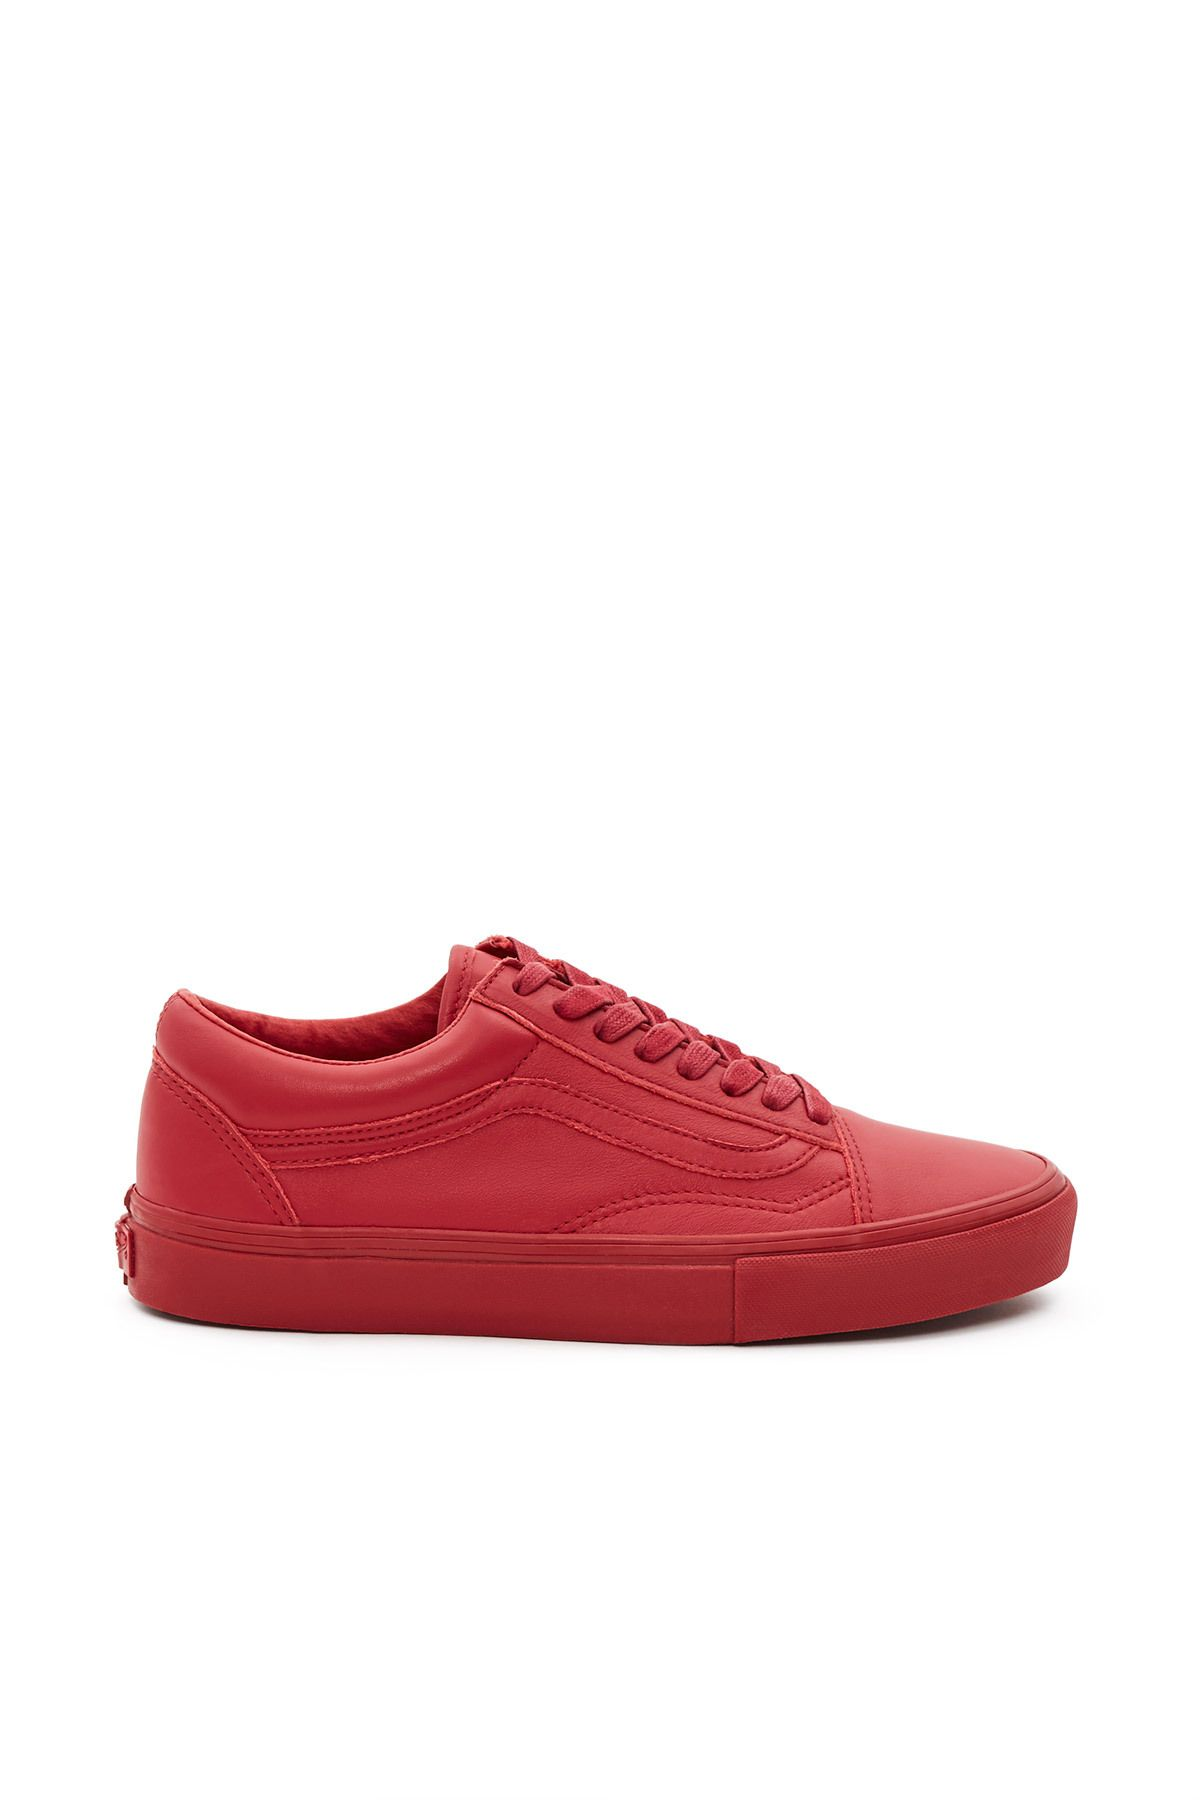 Shop Vans for Opening Ceremony and other designer brands at Opening  Ceremony.